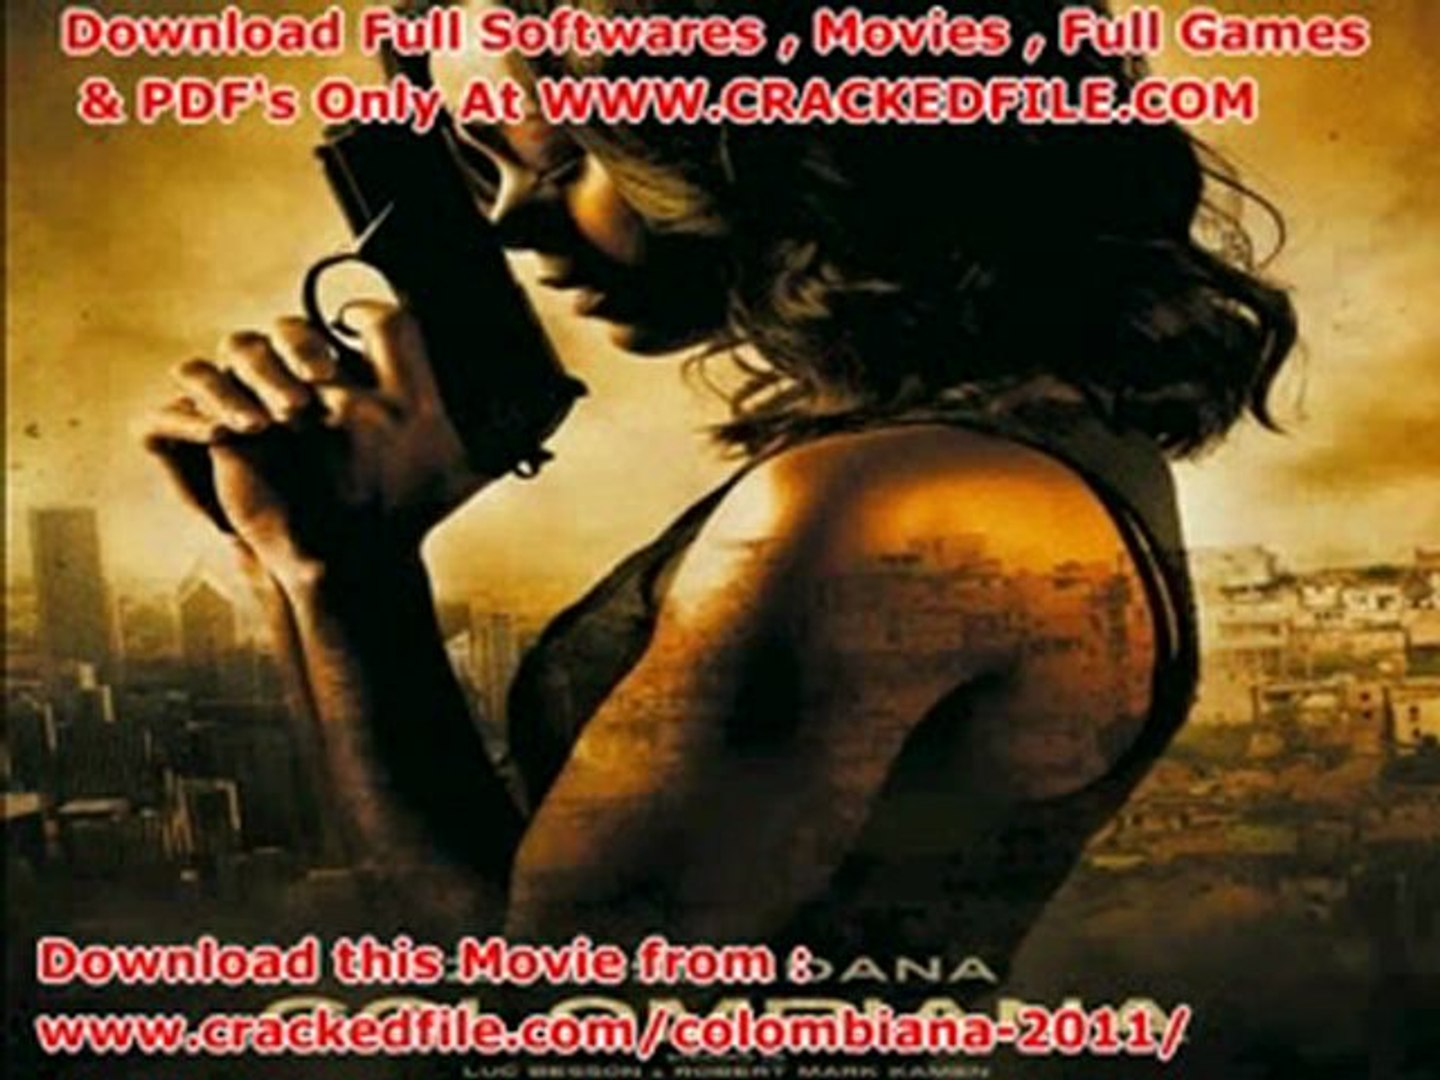 Get COLOMBIANA 2011 MOVIE FREE DOWNLOAD